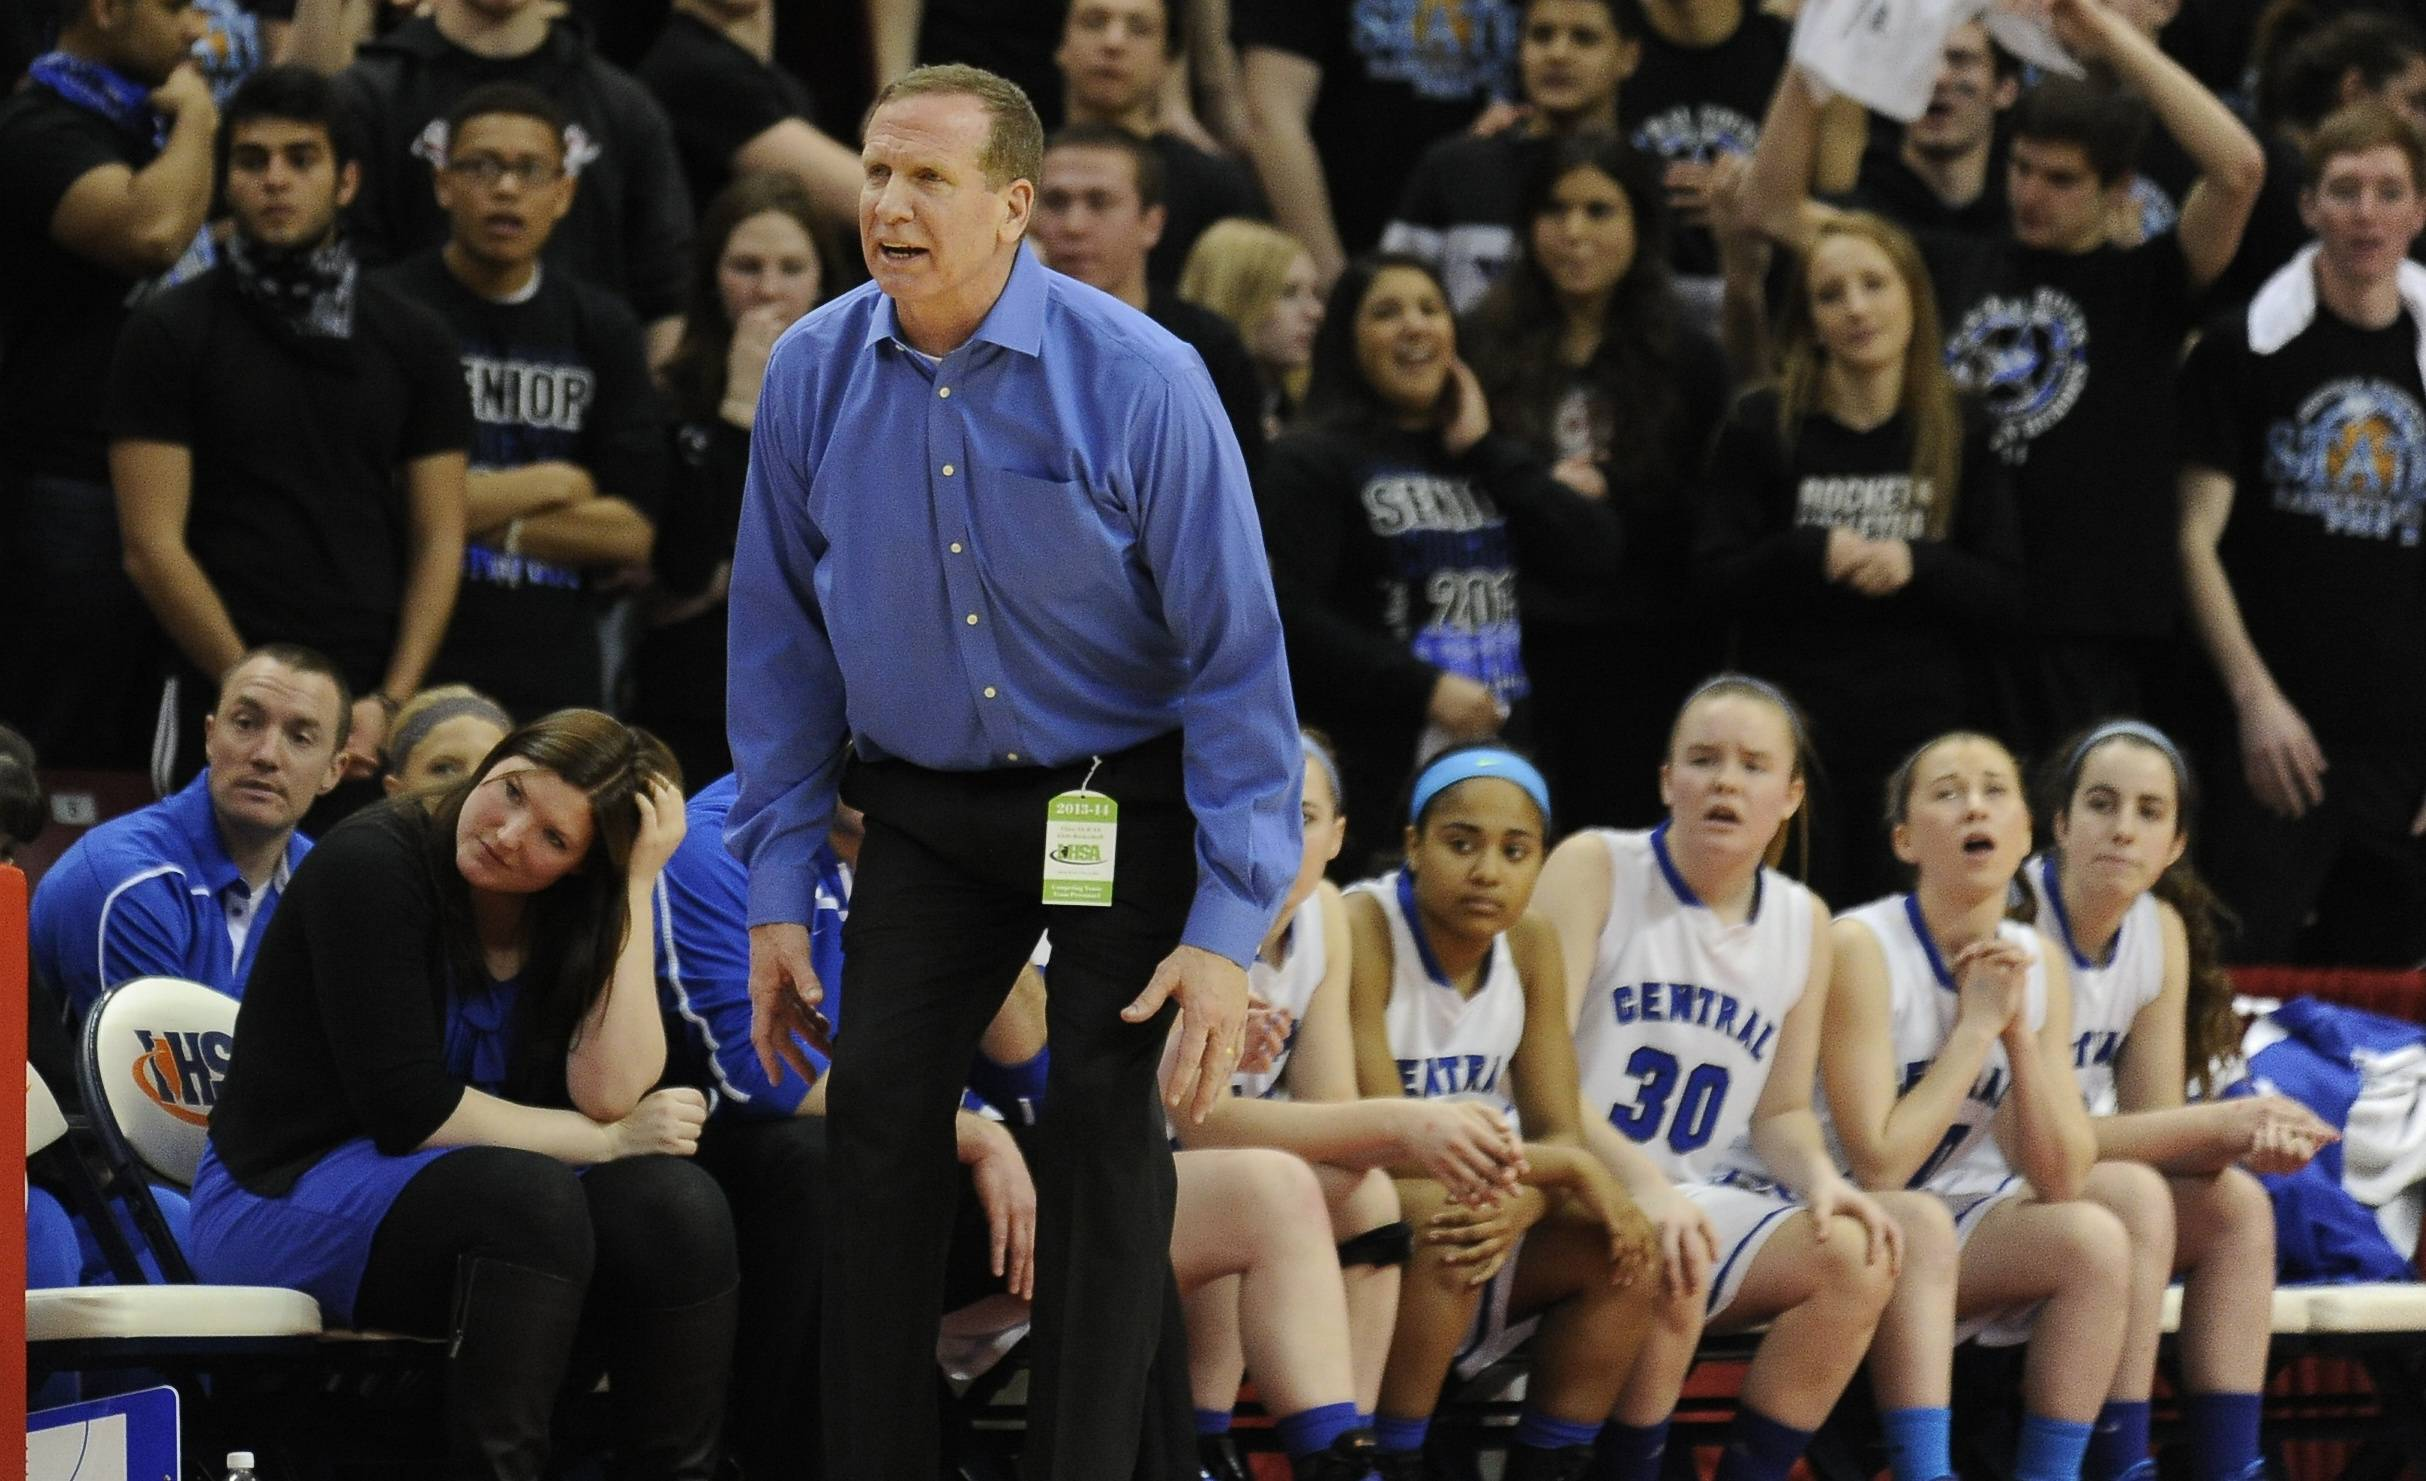 Burlington Central coach Mark Smith directs the Rockets Friday against Montini in the Class 3A state semifinals at Redbird Arena in Normal.